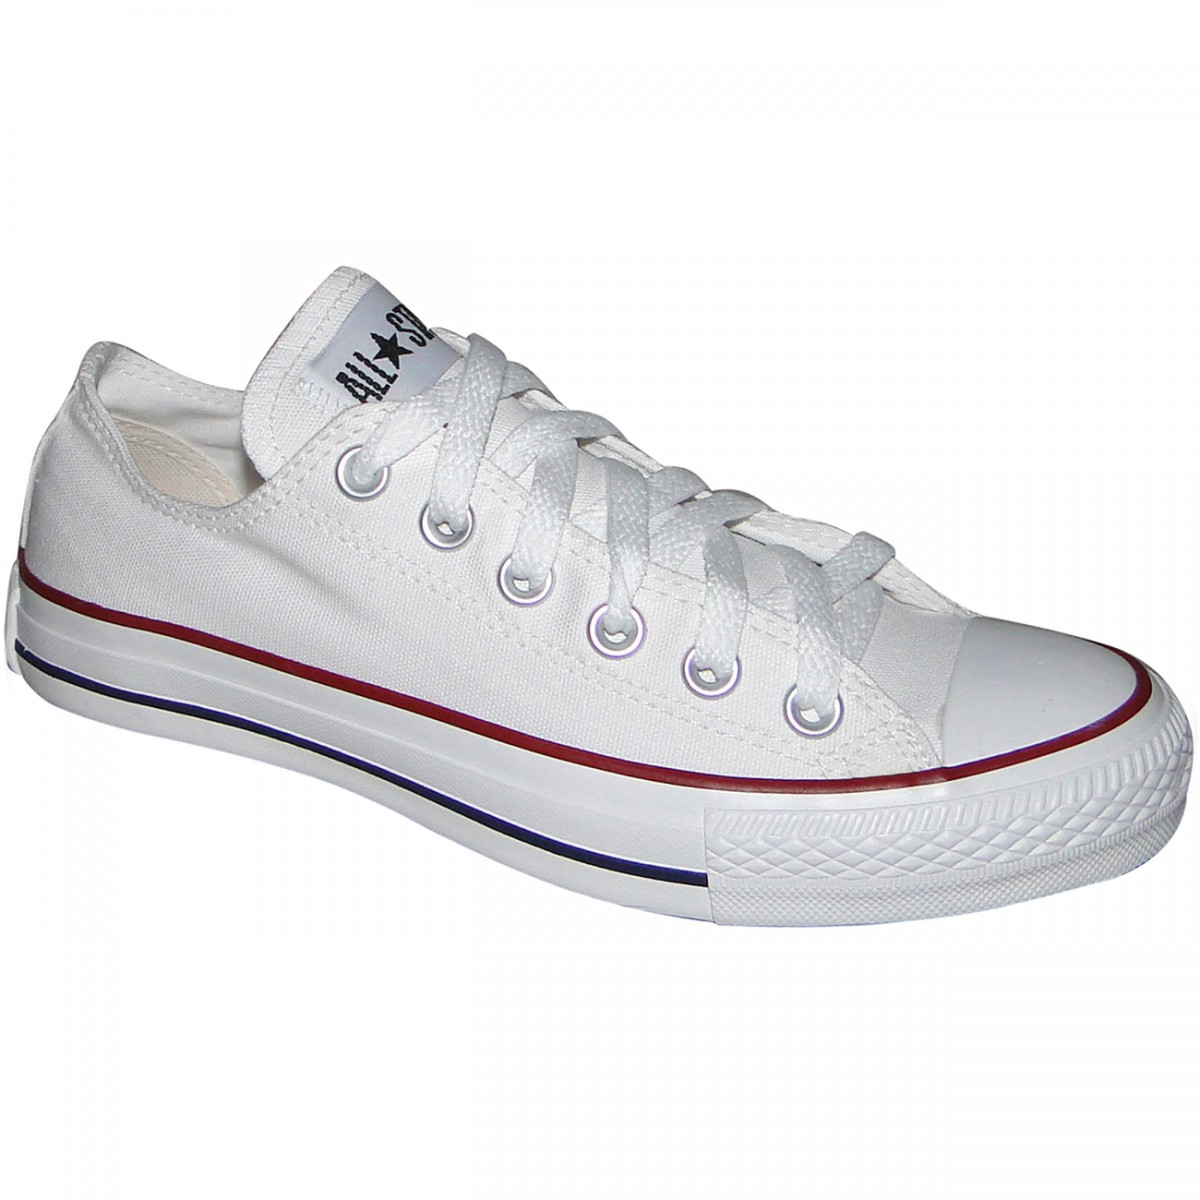 Core Tenis Tenis Star Converse All X8wZNPnk0O